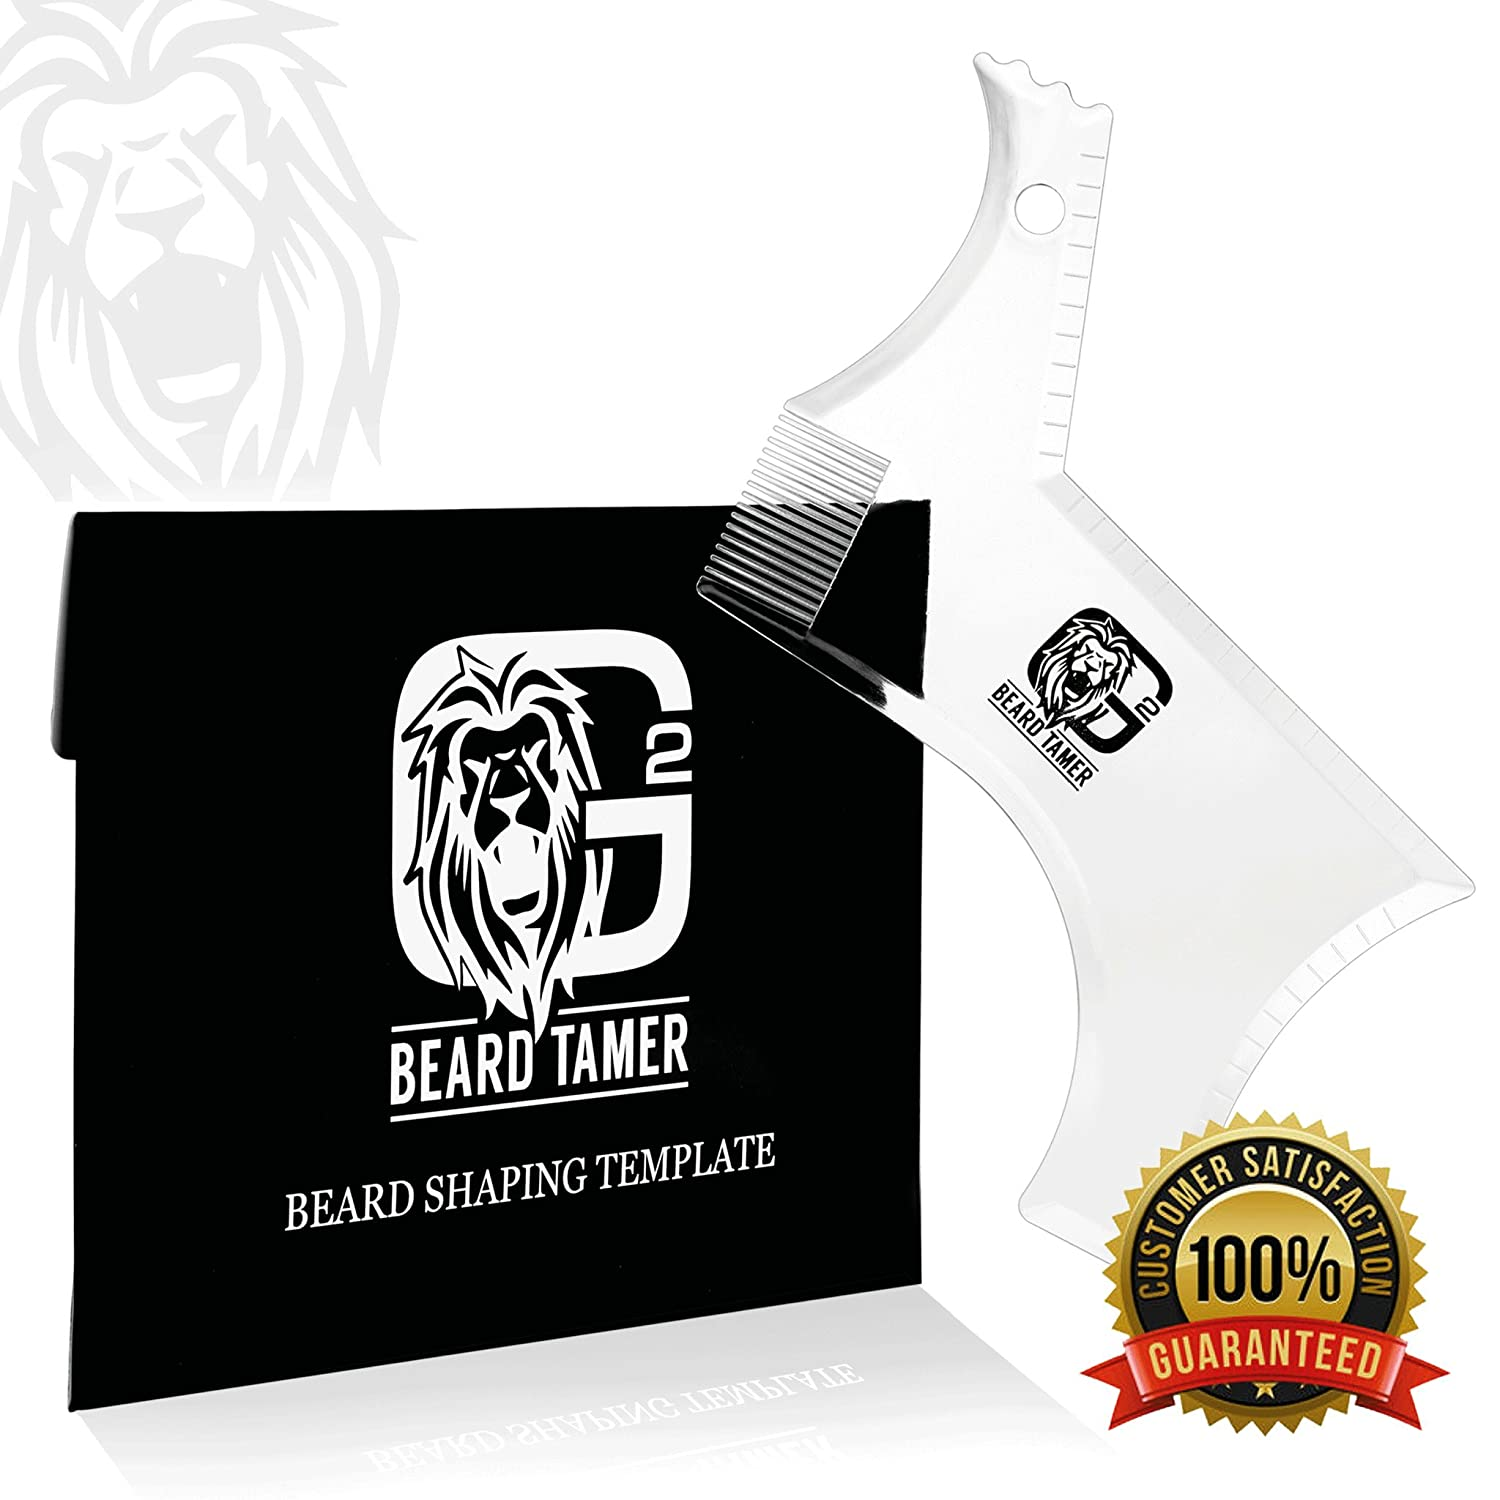 BEARD TAMER Beard Trimmer Shaping Tool Template. Innovative NEW DESIGN & TRANSPARENT beard shaper for easy use with clipper or razor. LIGHTWEIGHT & FLEXIBLE for easy handling. BONUS Beard Shaping User E-BOOK including over 15 BEARD STYLES TO CHOOS